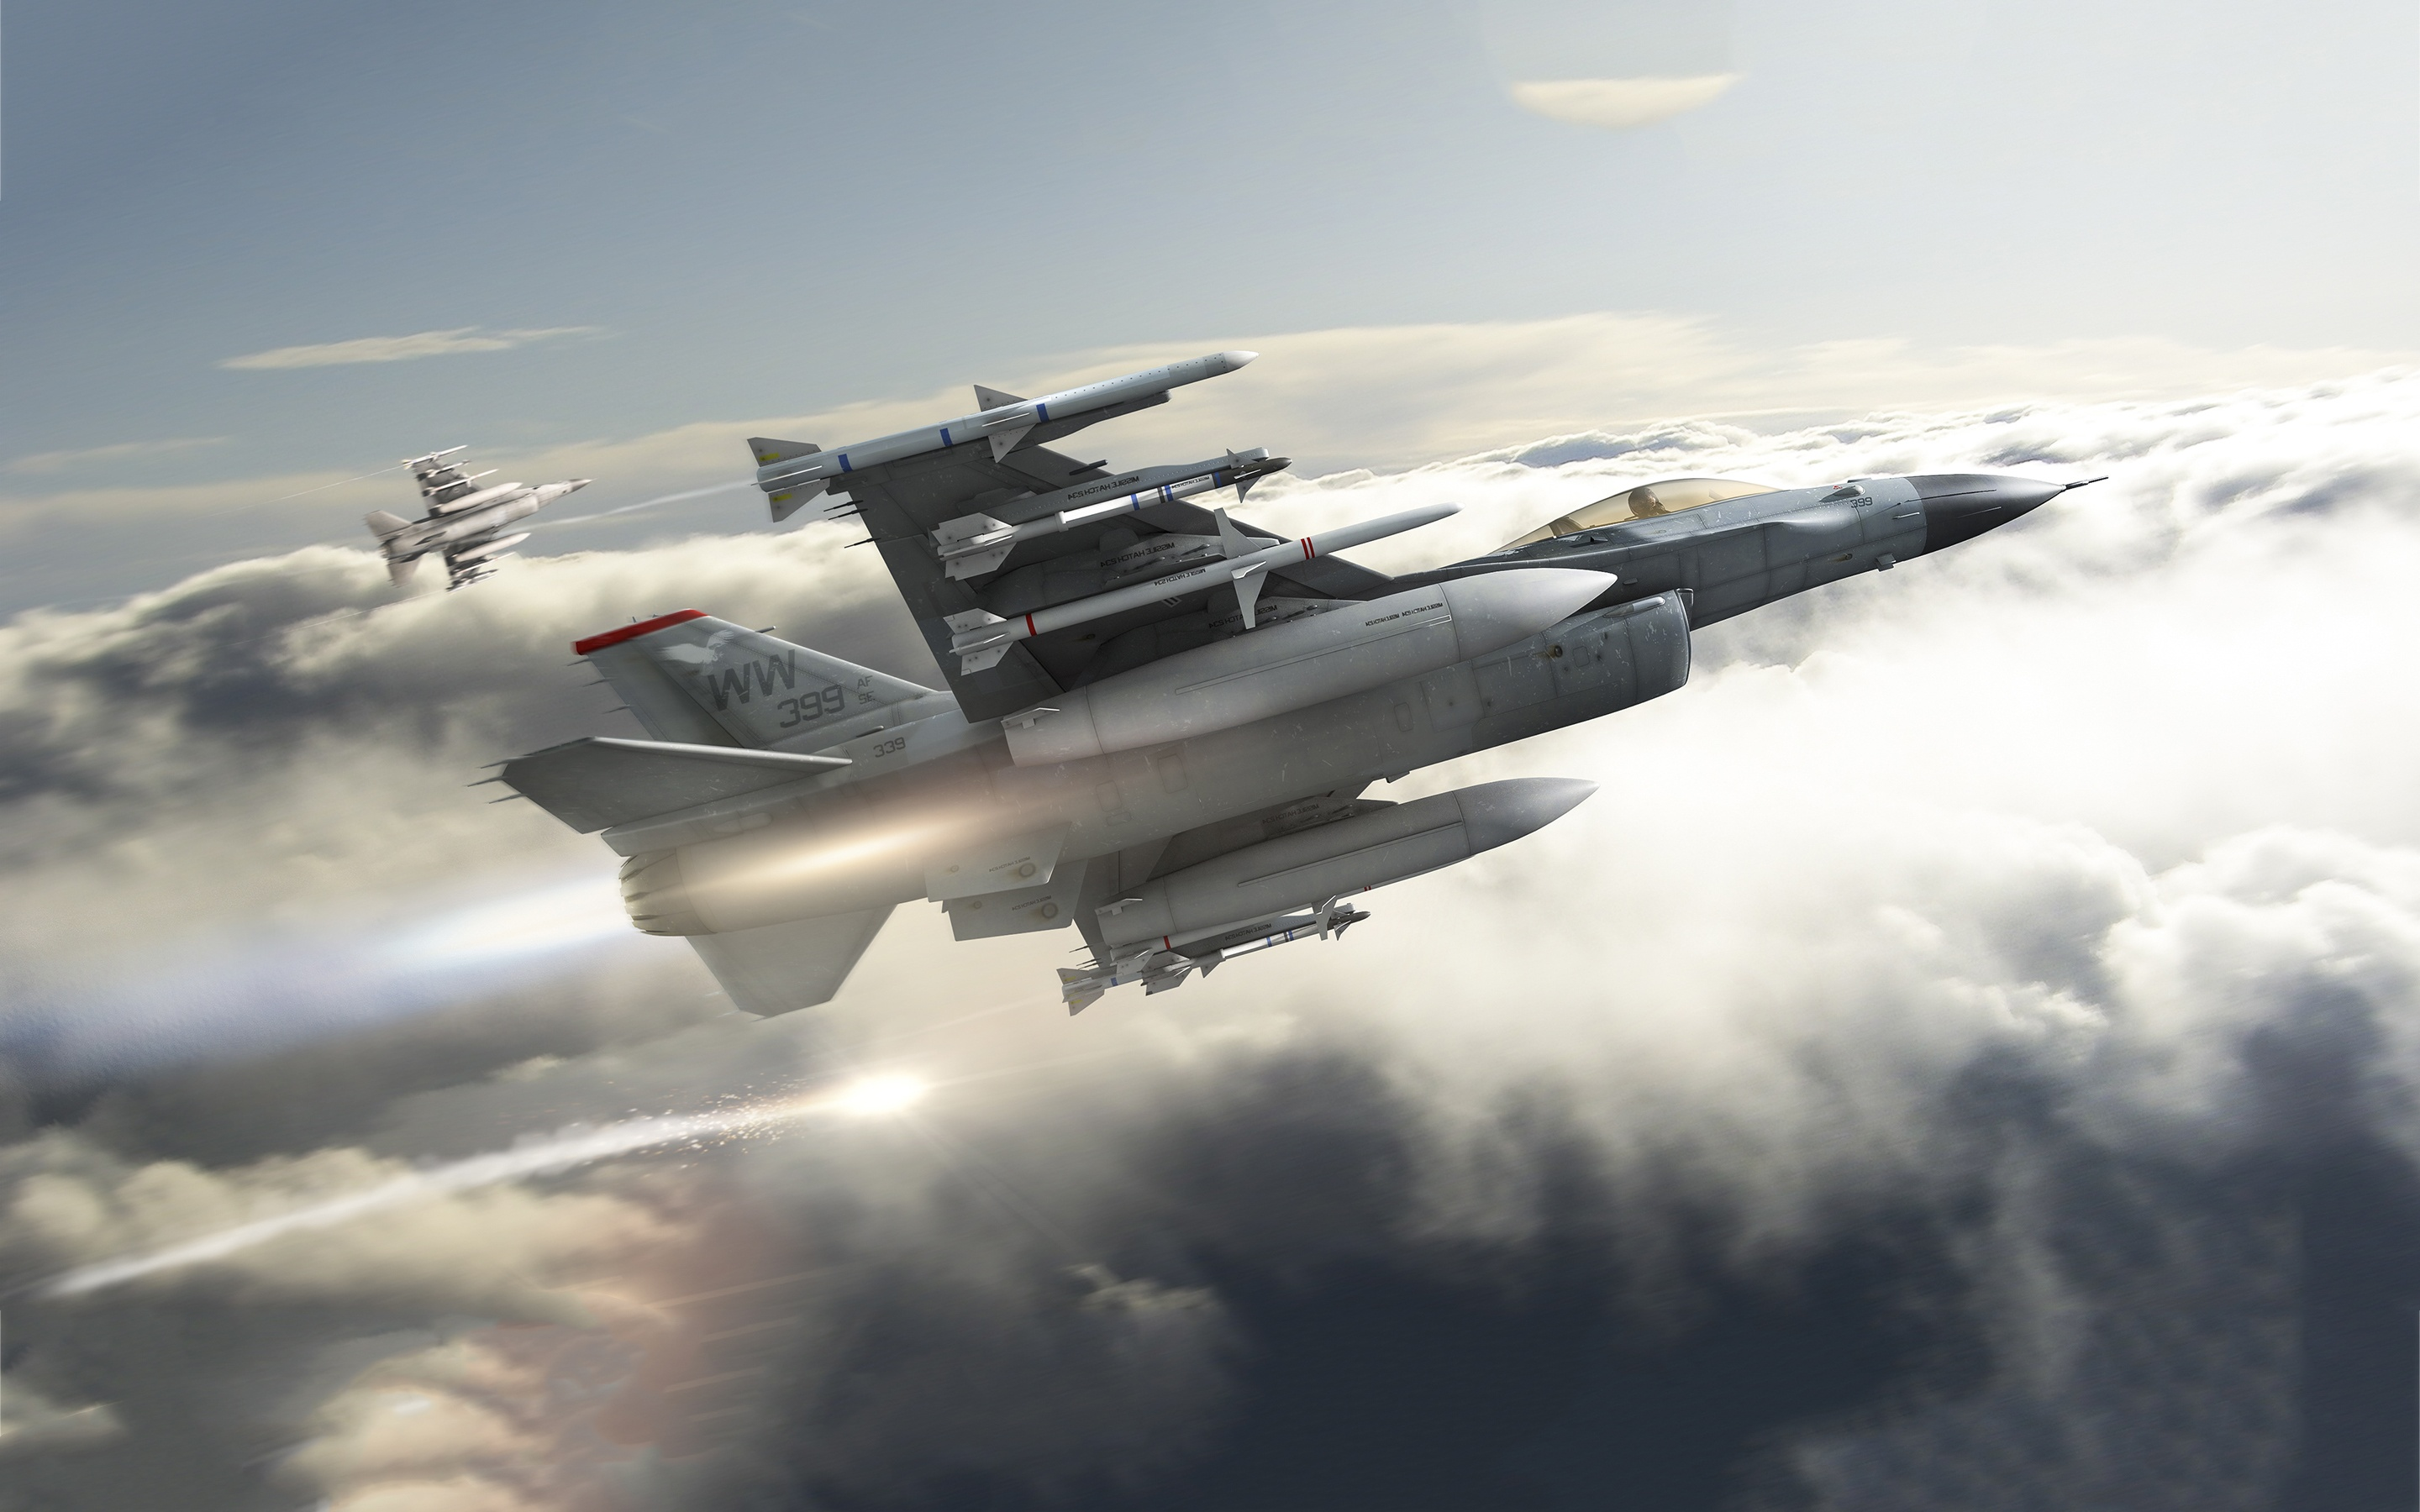 Armed f16 jets Wallpaper in 2880x1800 Retina 15''